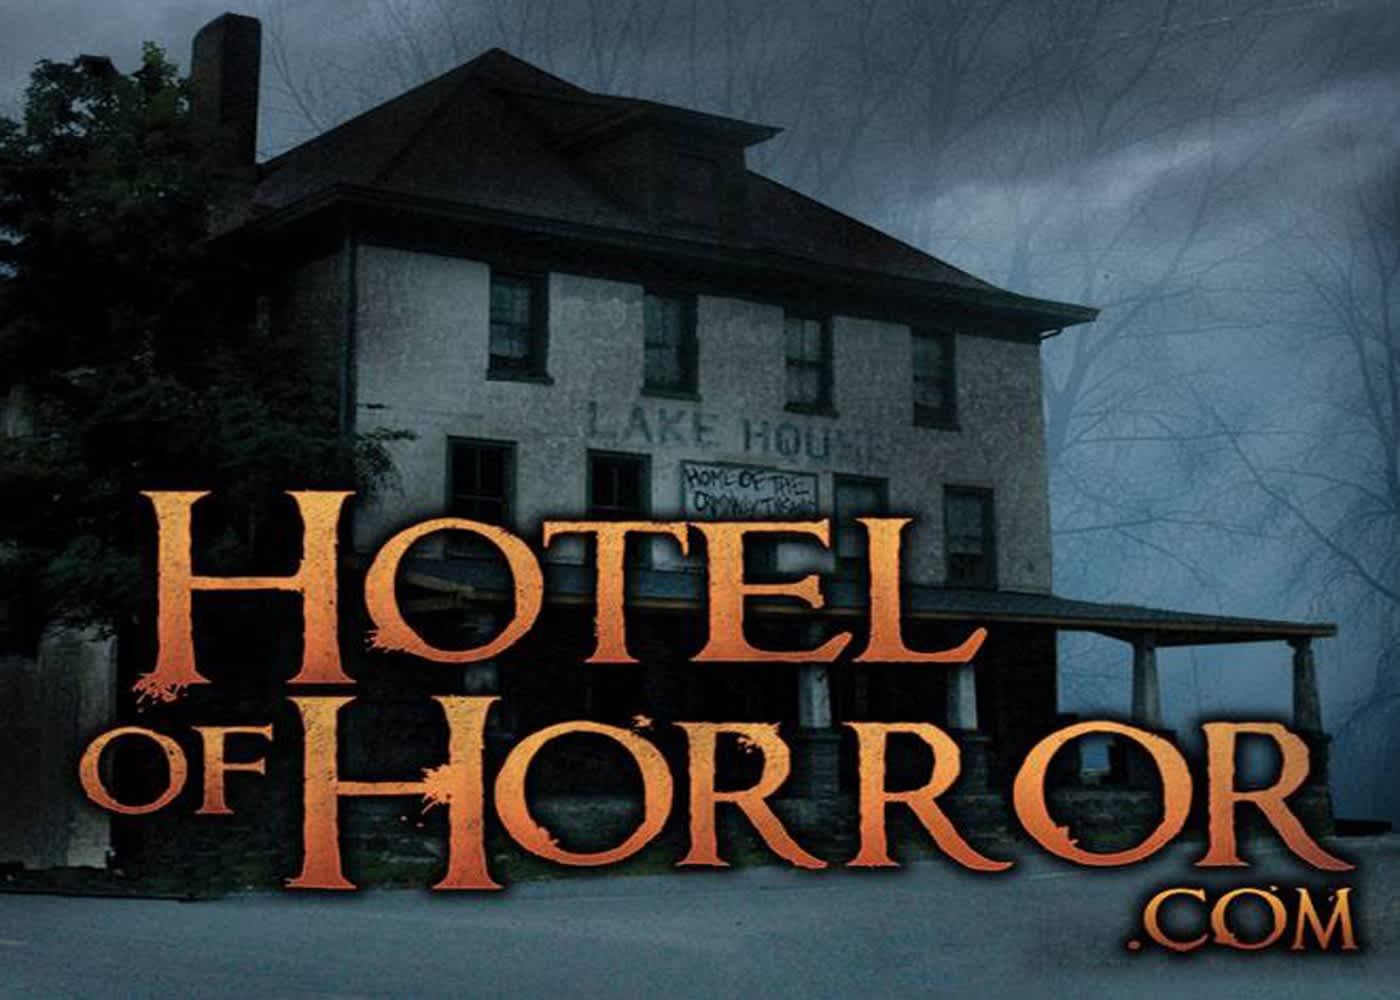 the hotel of horror featuring altered nightmares | saylorsburg, pa 18353